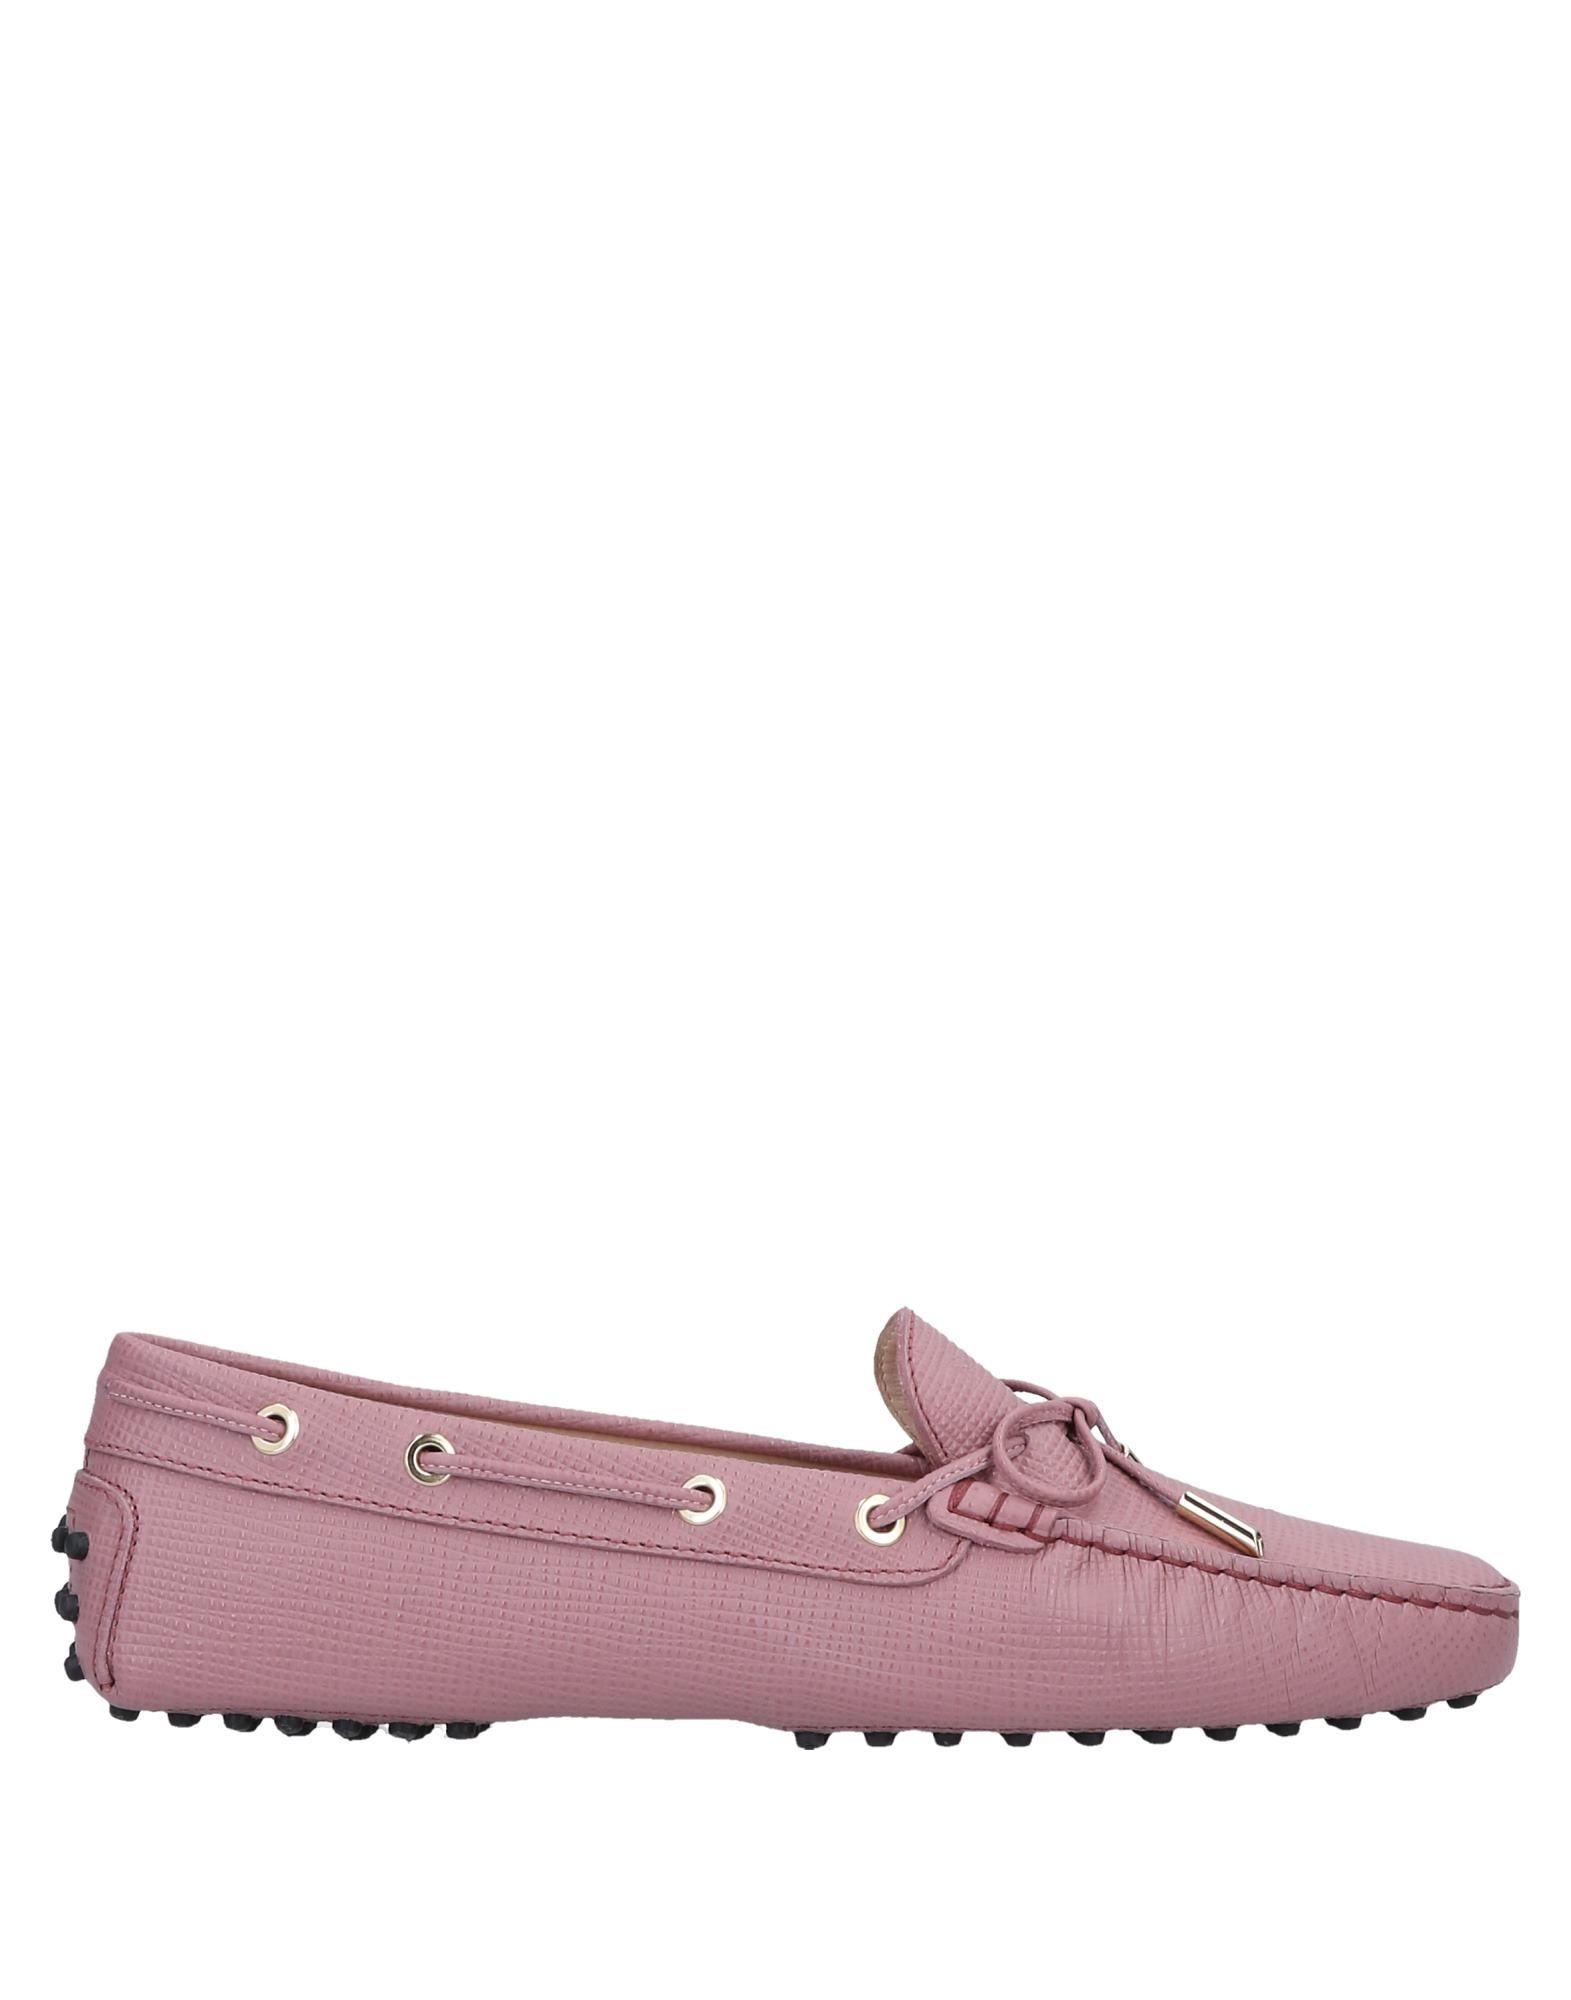 Tod's Light Purple Leather Loafers